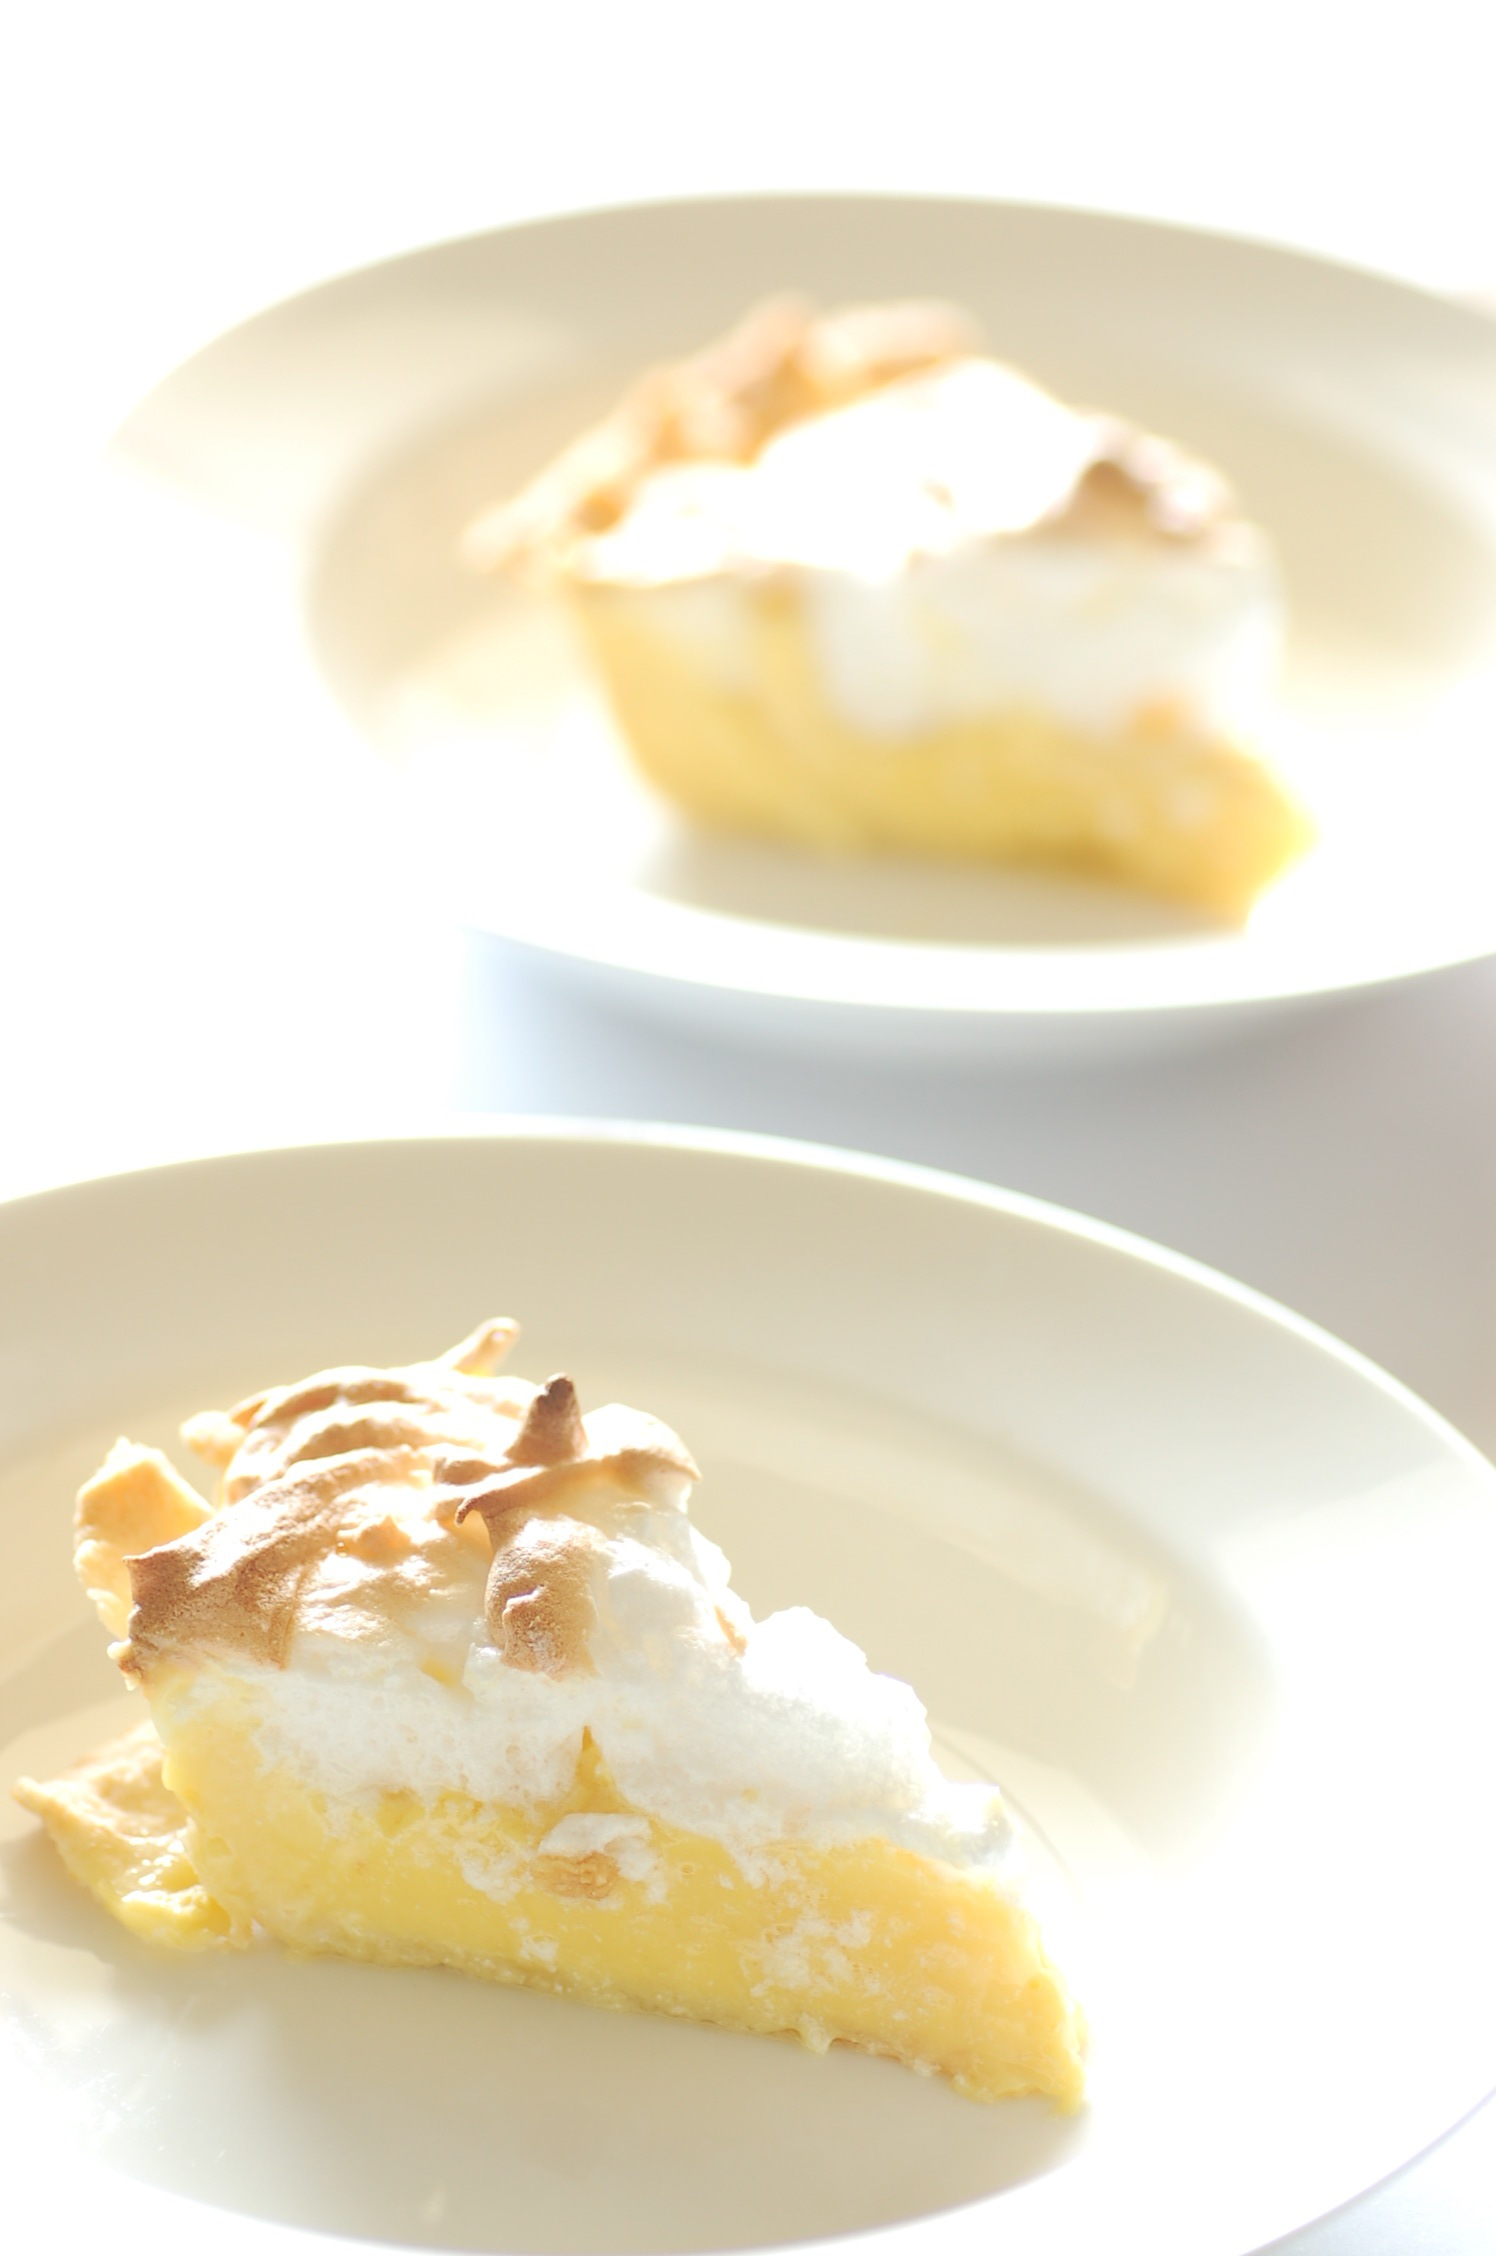 Lemon Meringue Pie Paula Deen Food Network